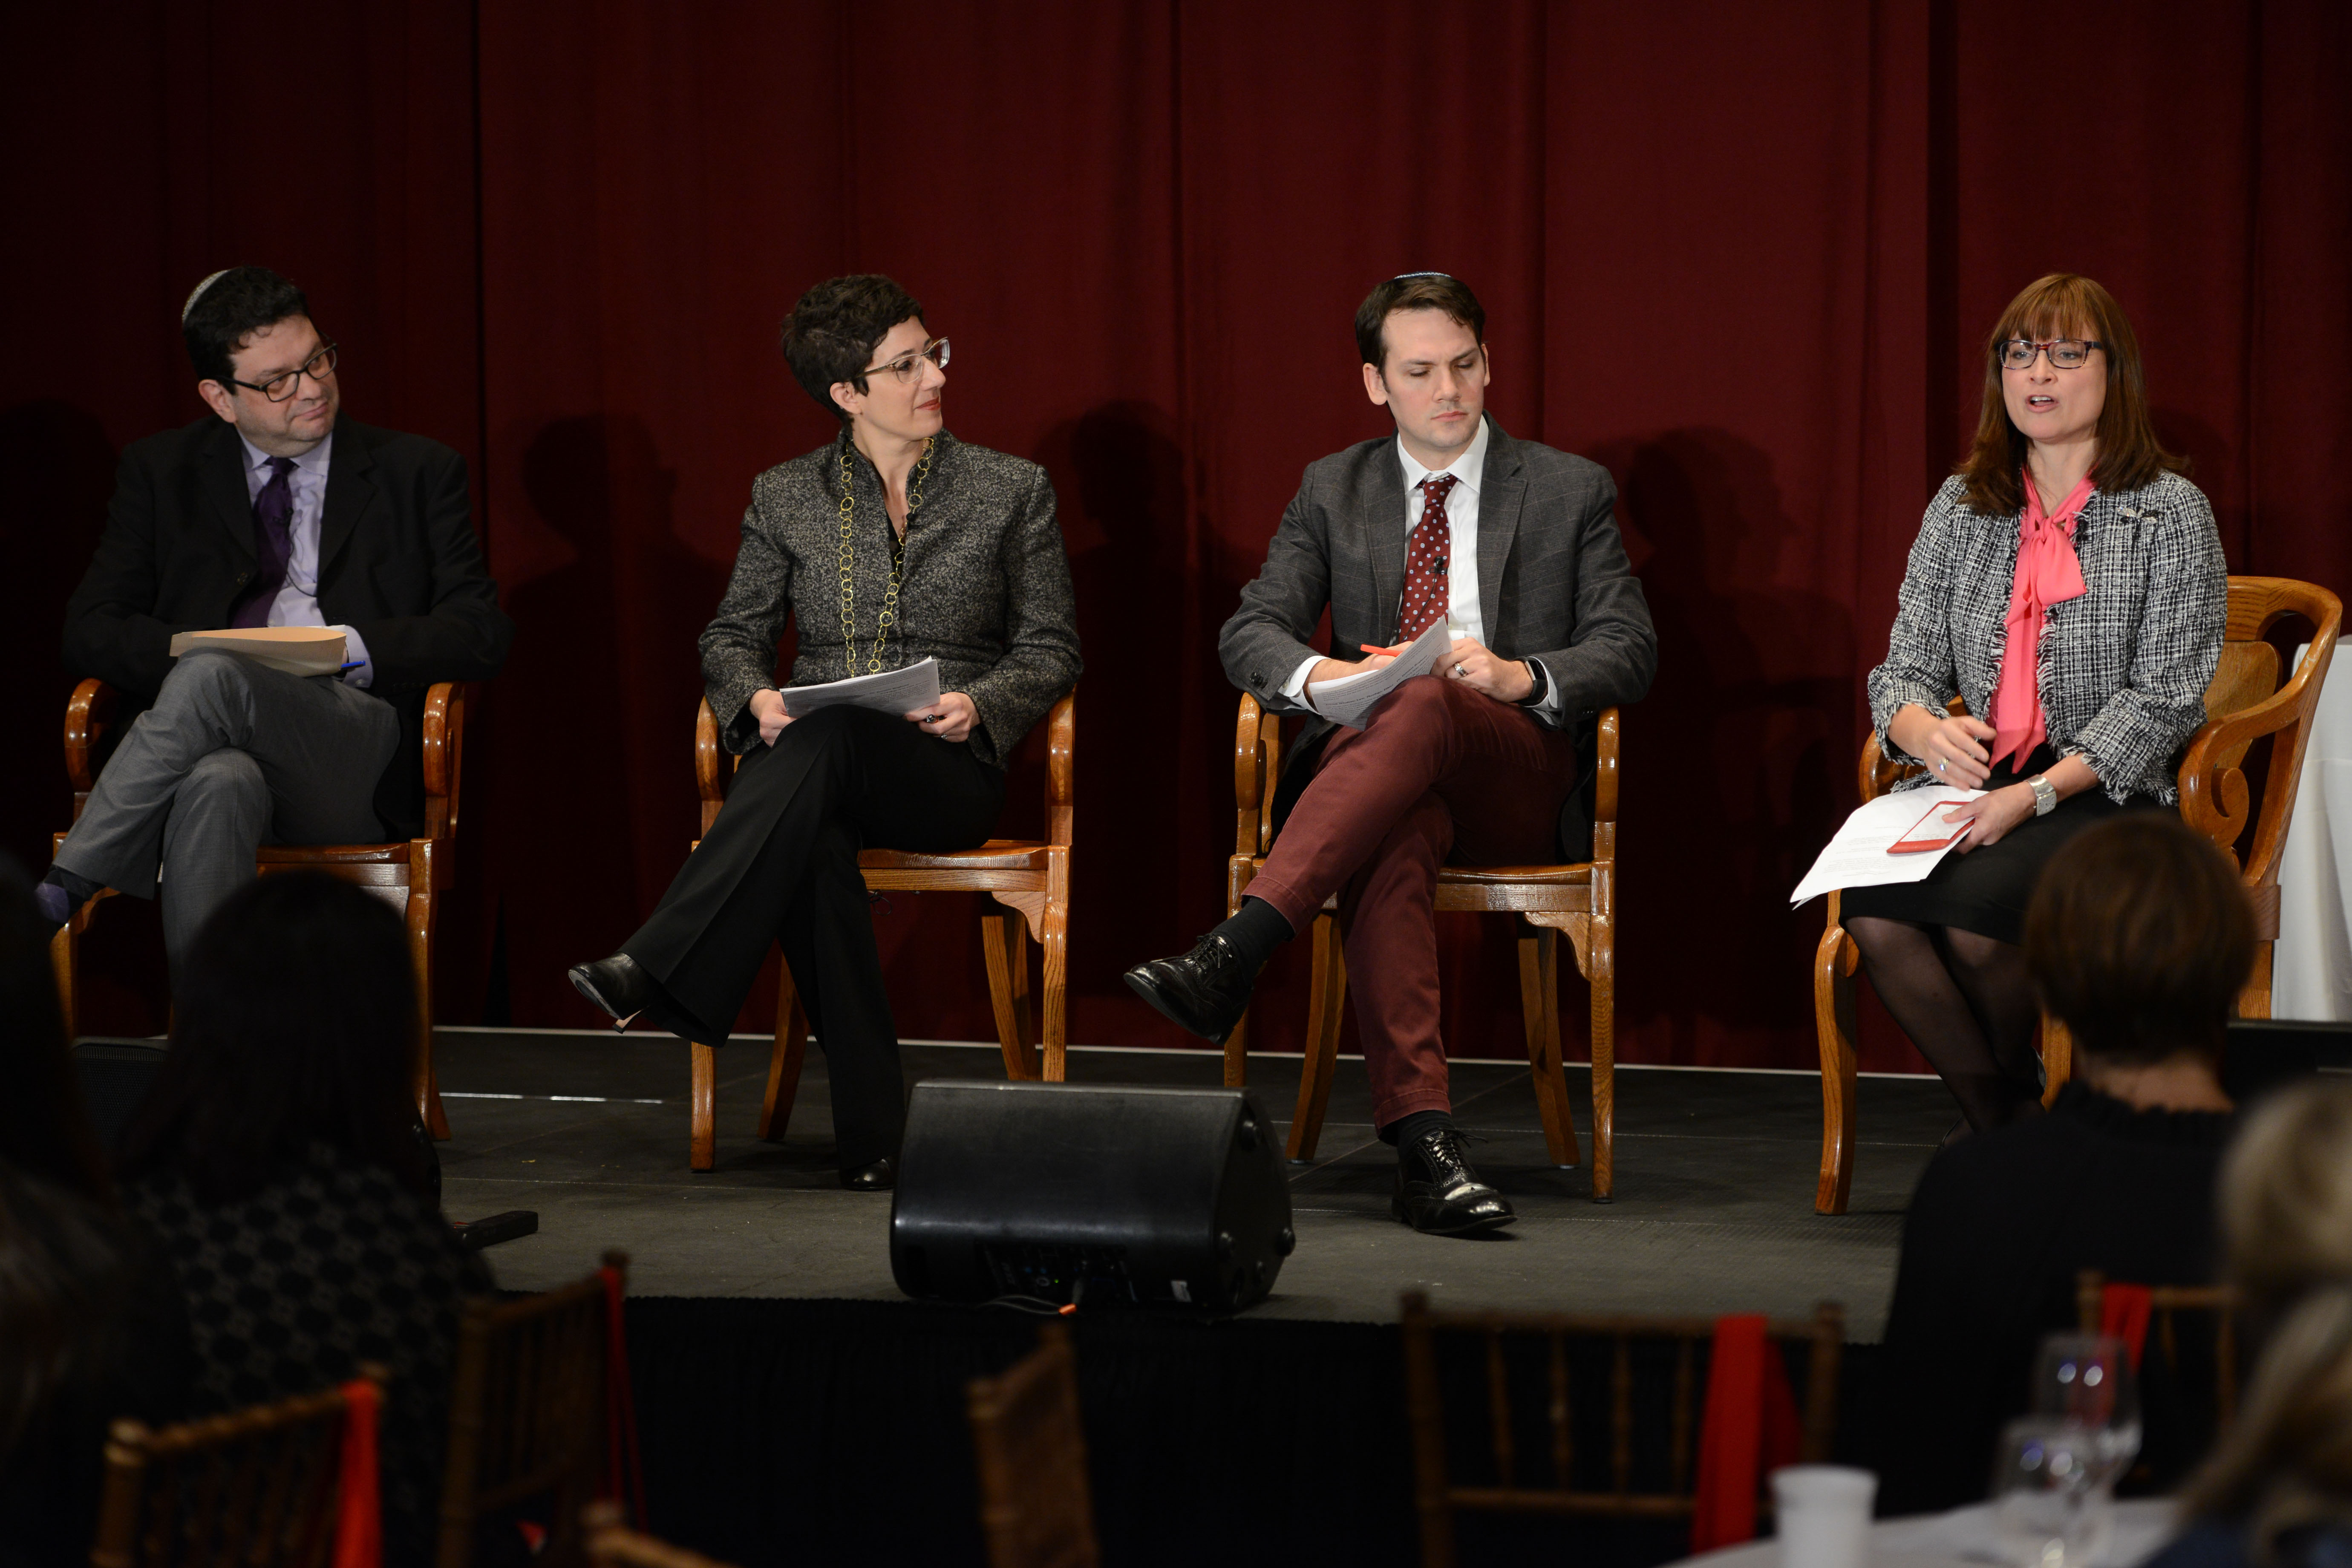 Jewish Paths to Wisdom panelists. From left: 2011 Covenant Award Recipient Rabbi Shai Held, Noa Kushner, Dr. Yonatan Brafman, and 2009 Covenant Award Recipient Dr. Erica Brown.